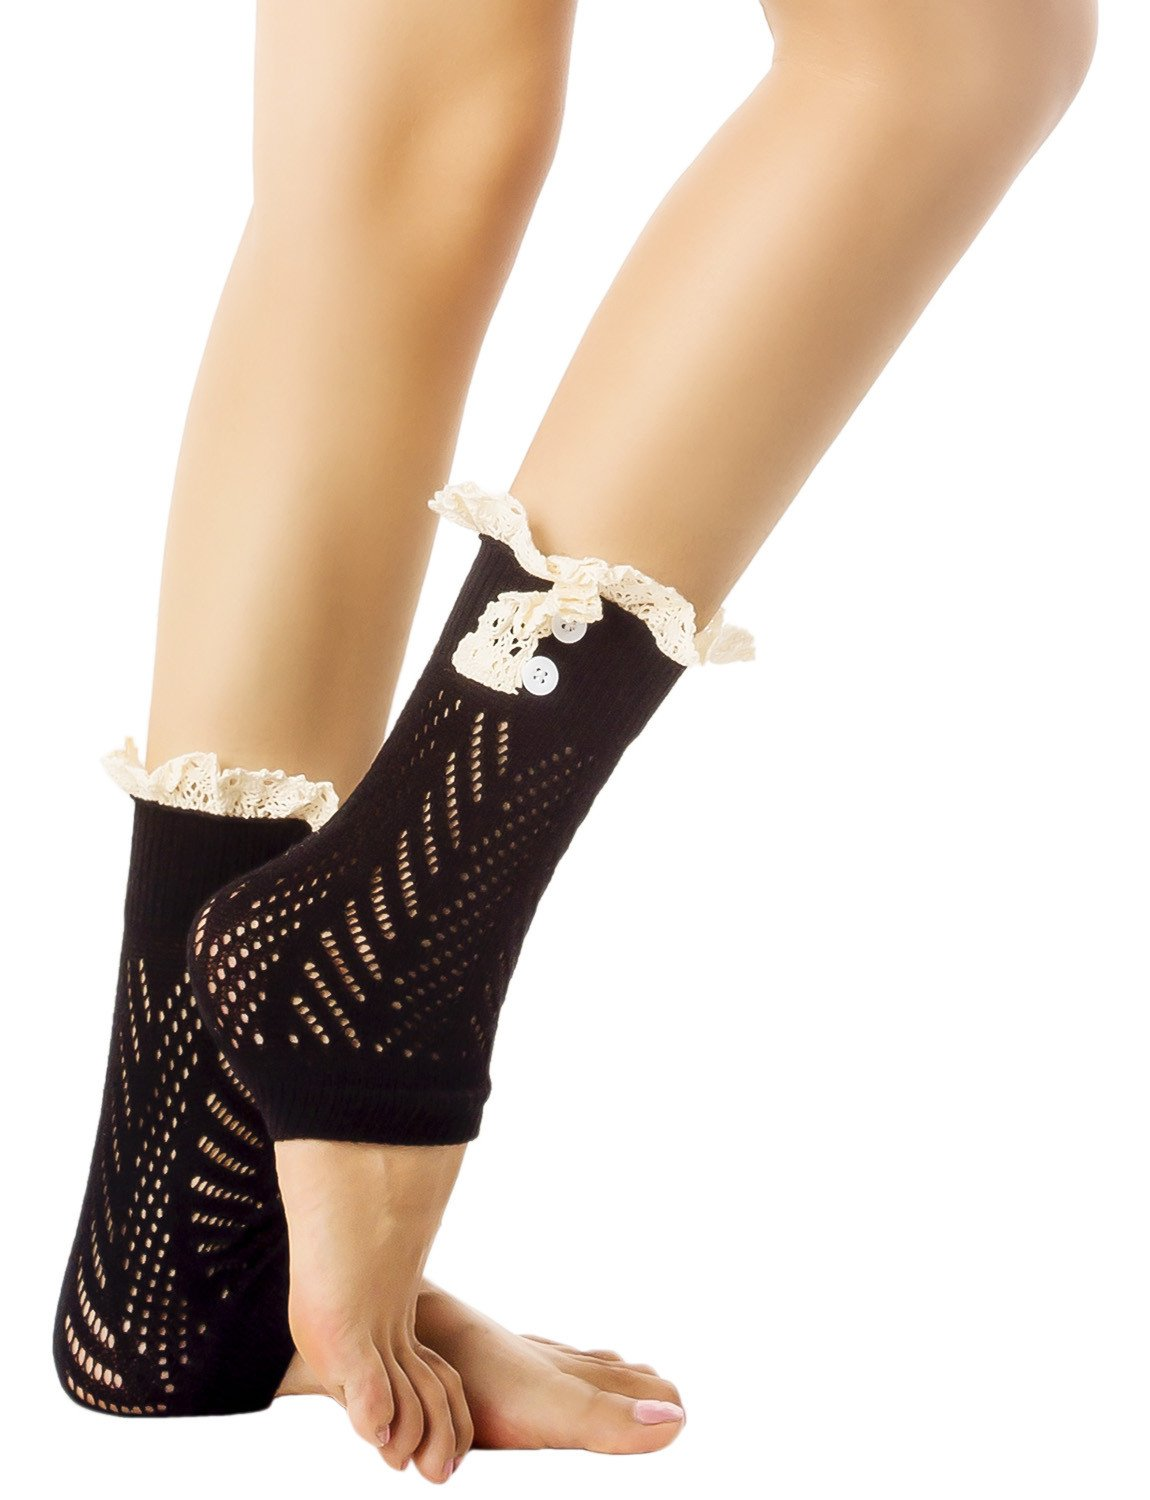 Women's Knitting Buttoned Stylish Warm Eyelet Lace Cuff Ankle Leg Warmers, Size: One Size, Black